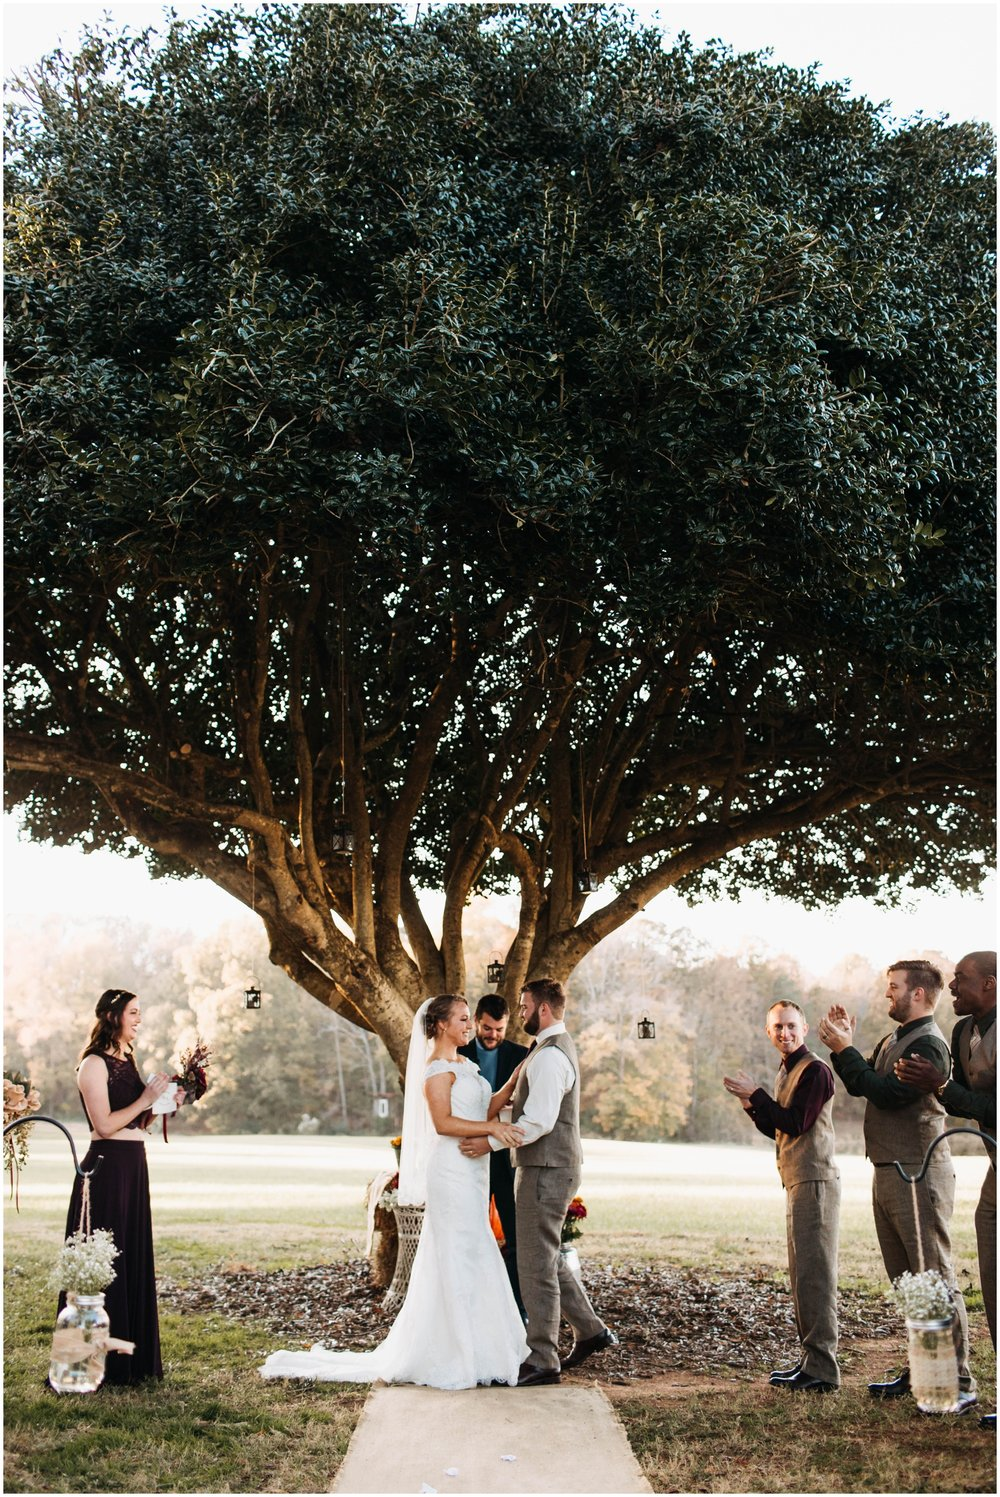 Jess+Dan_rustic_southern_farm_fall_wedding_charlotte_north carolina_taylor powers_0196.jpg